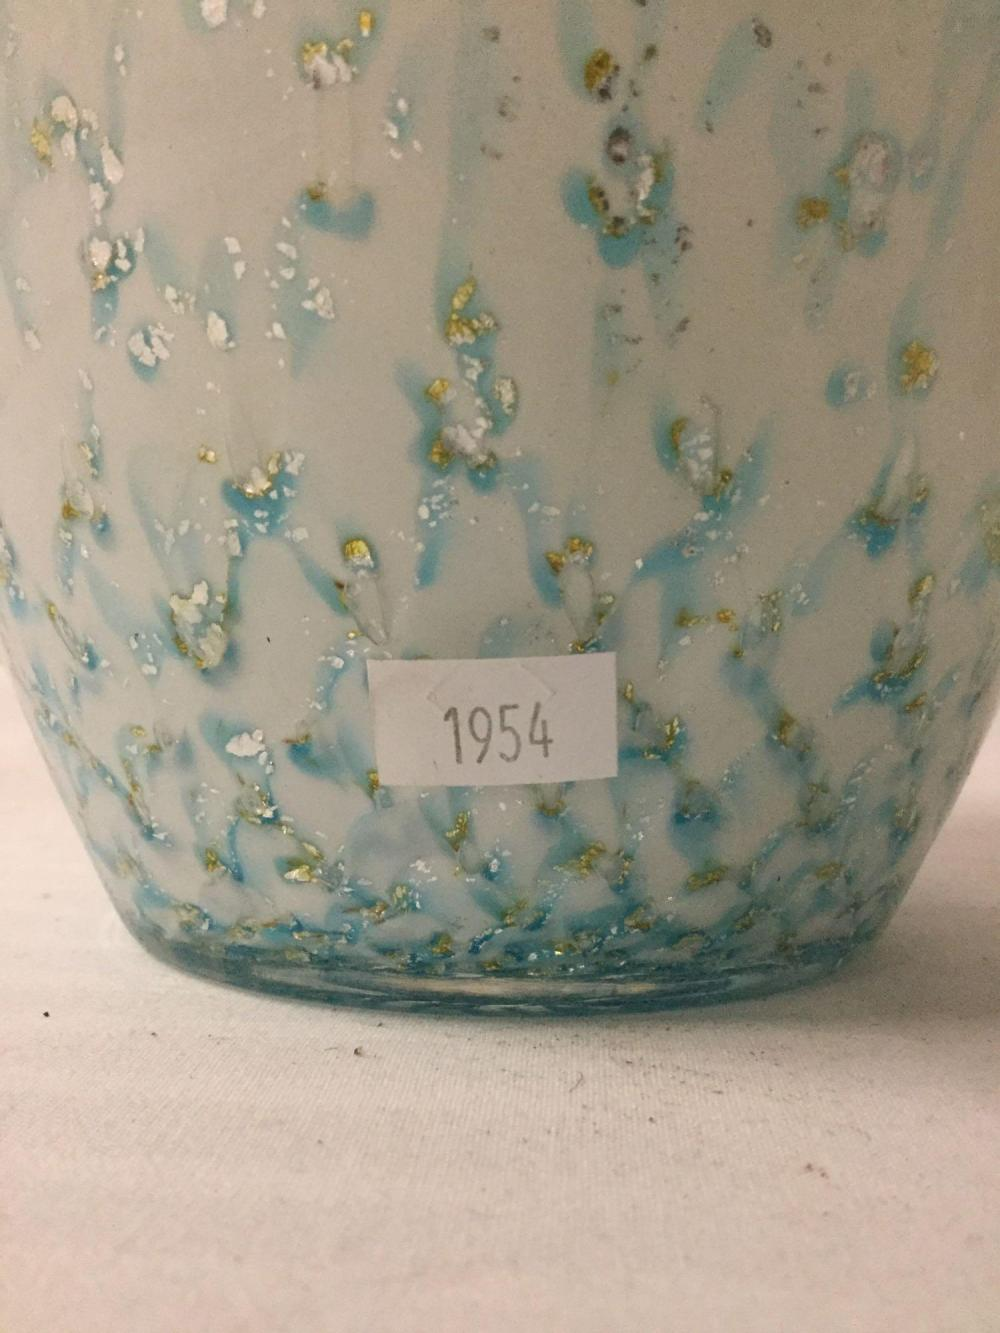 Lot 309: Vintage Murano art glass flower vase - made in Italy with white and blue drip / stretched glass